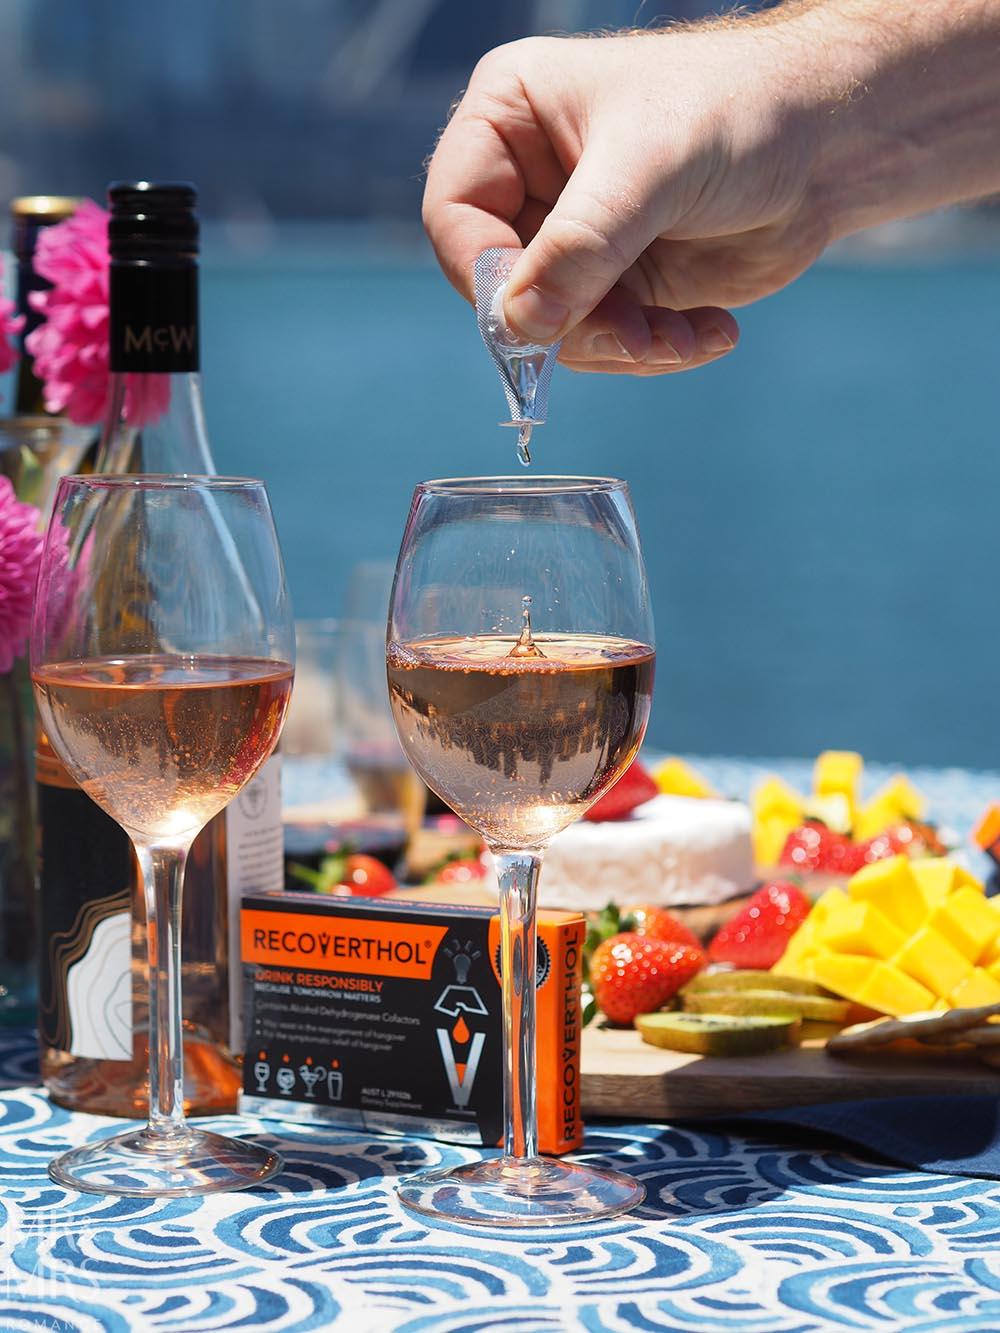 Summer party wines - Recoverthol